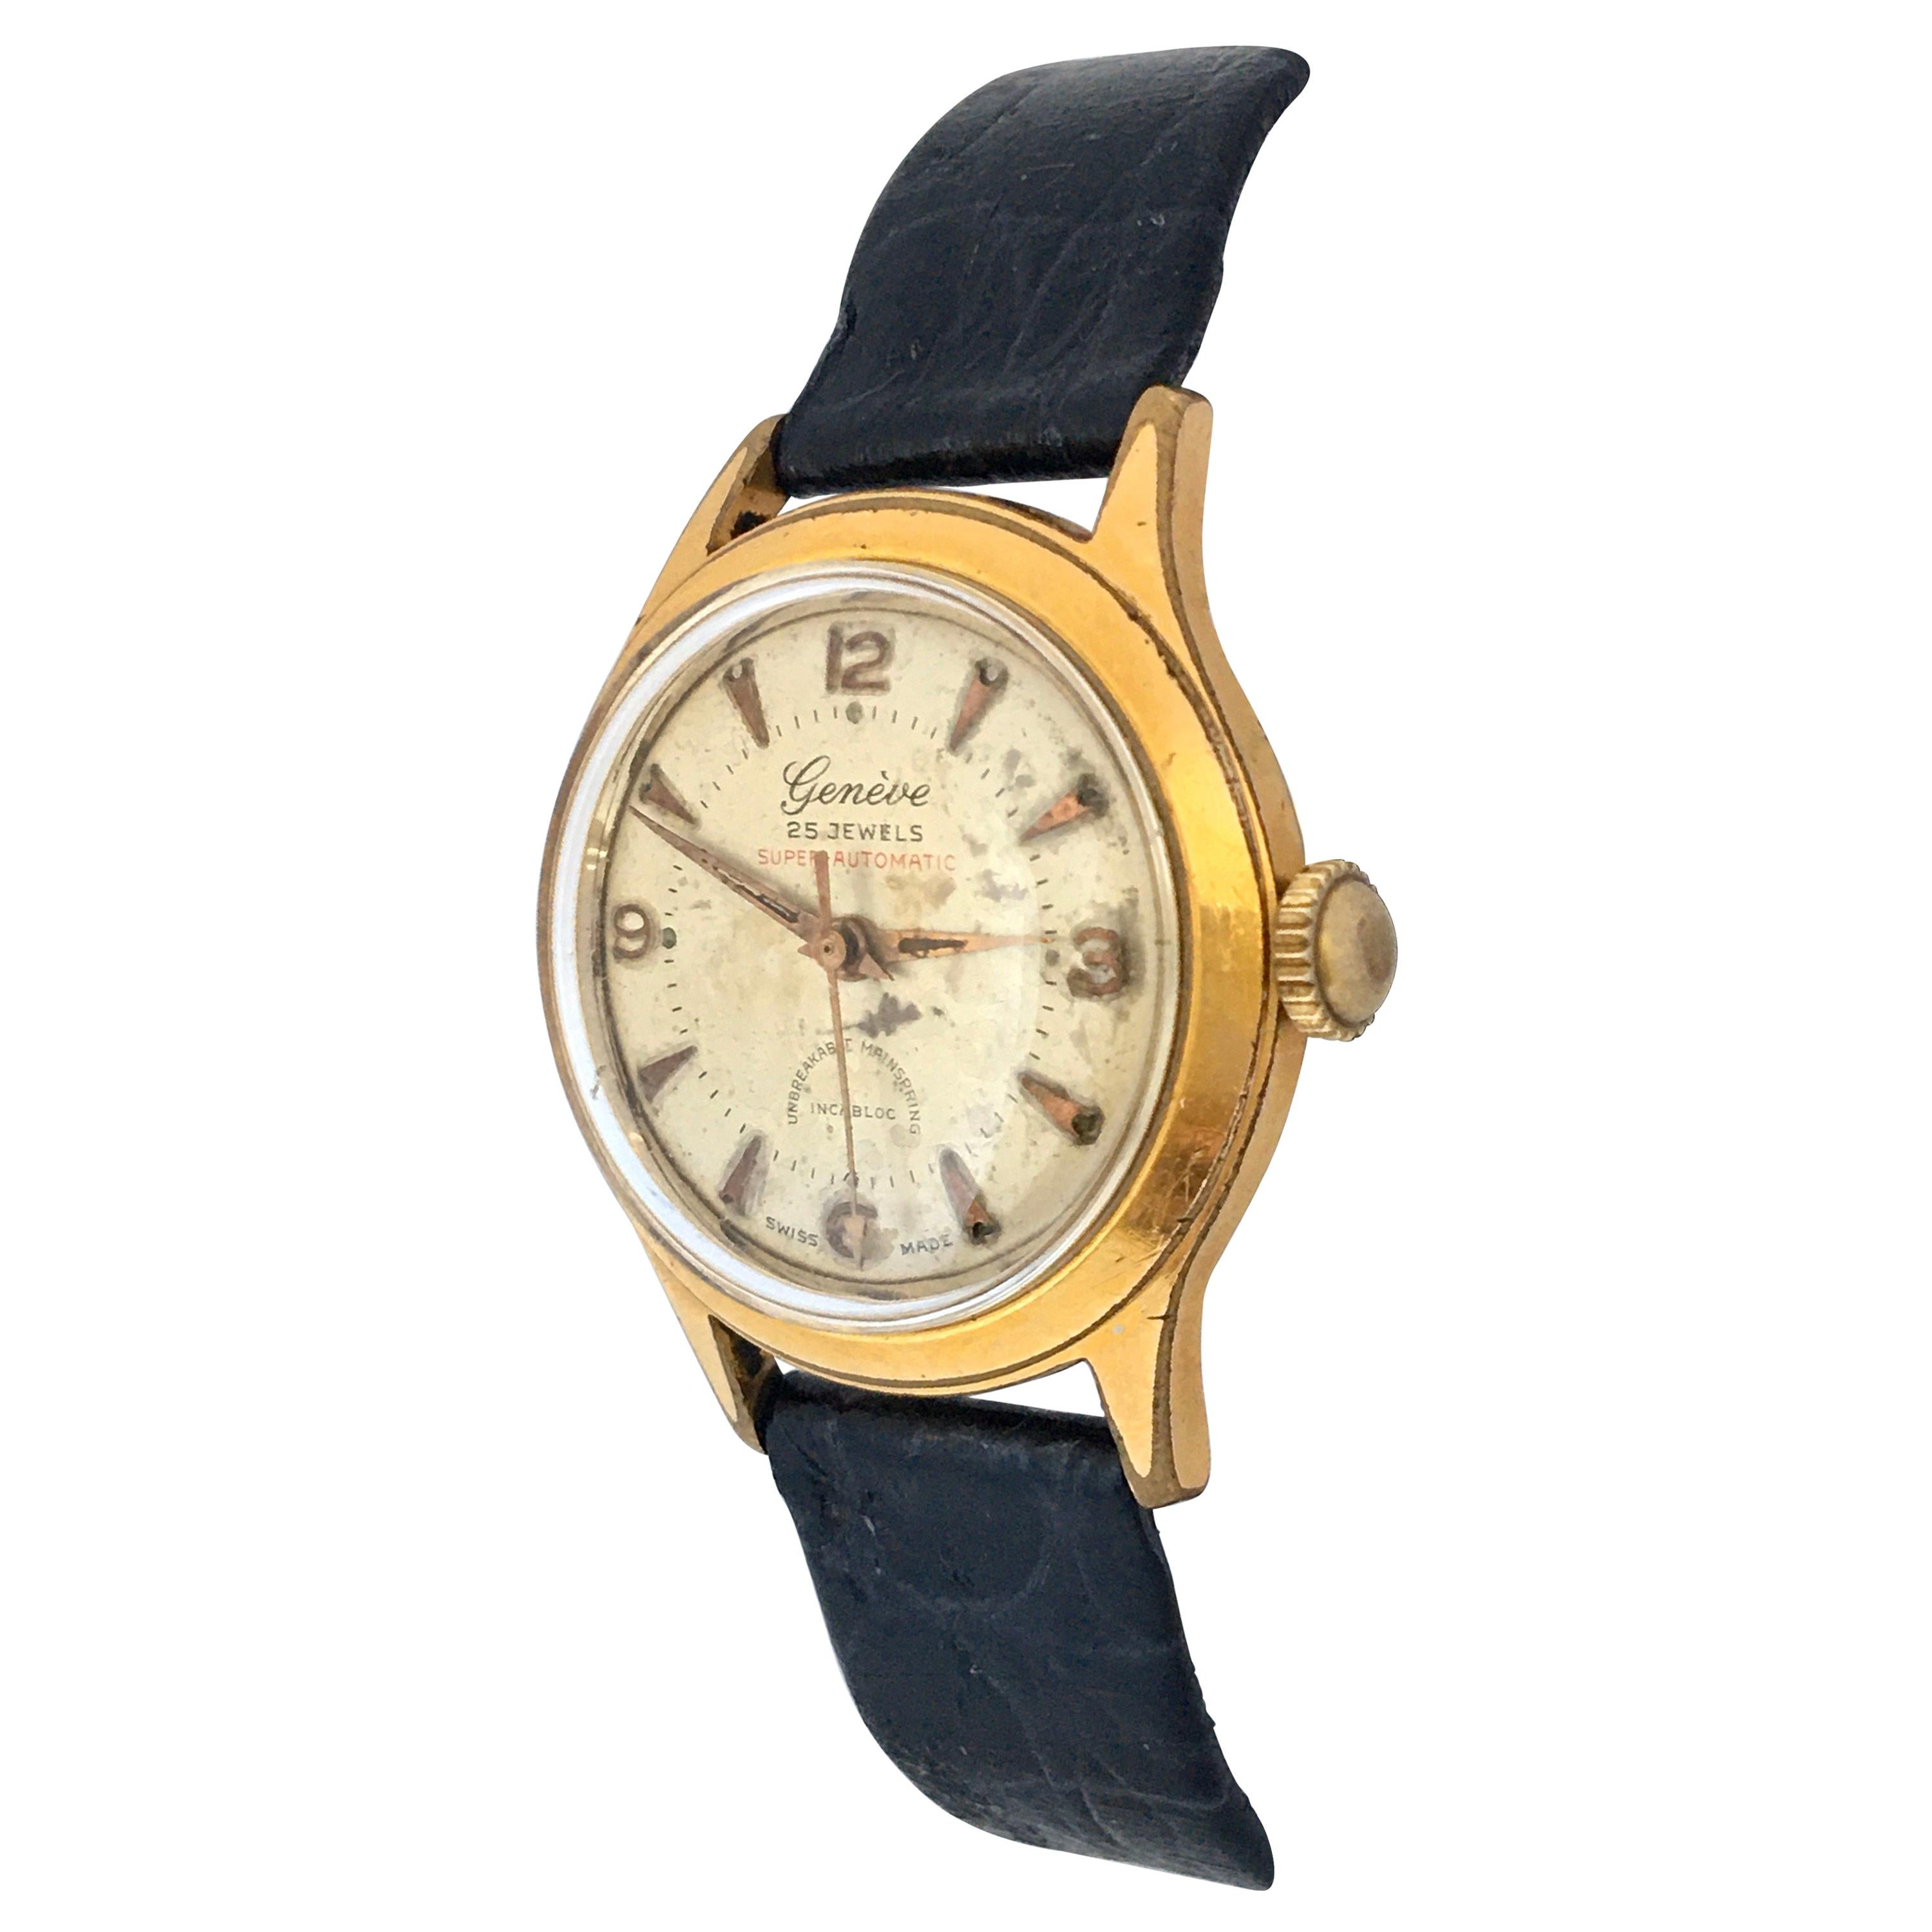 Vintage 1940s Gold Plated and Stainless Steel Back Genève Automatic Watch